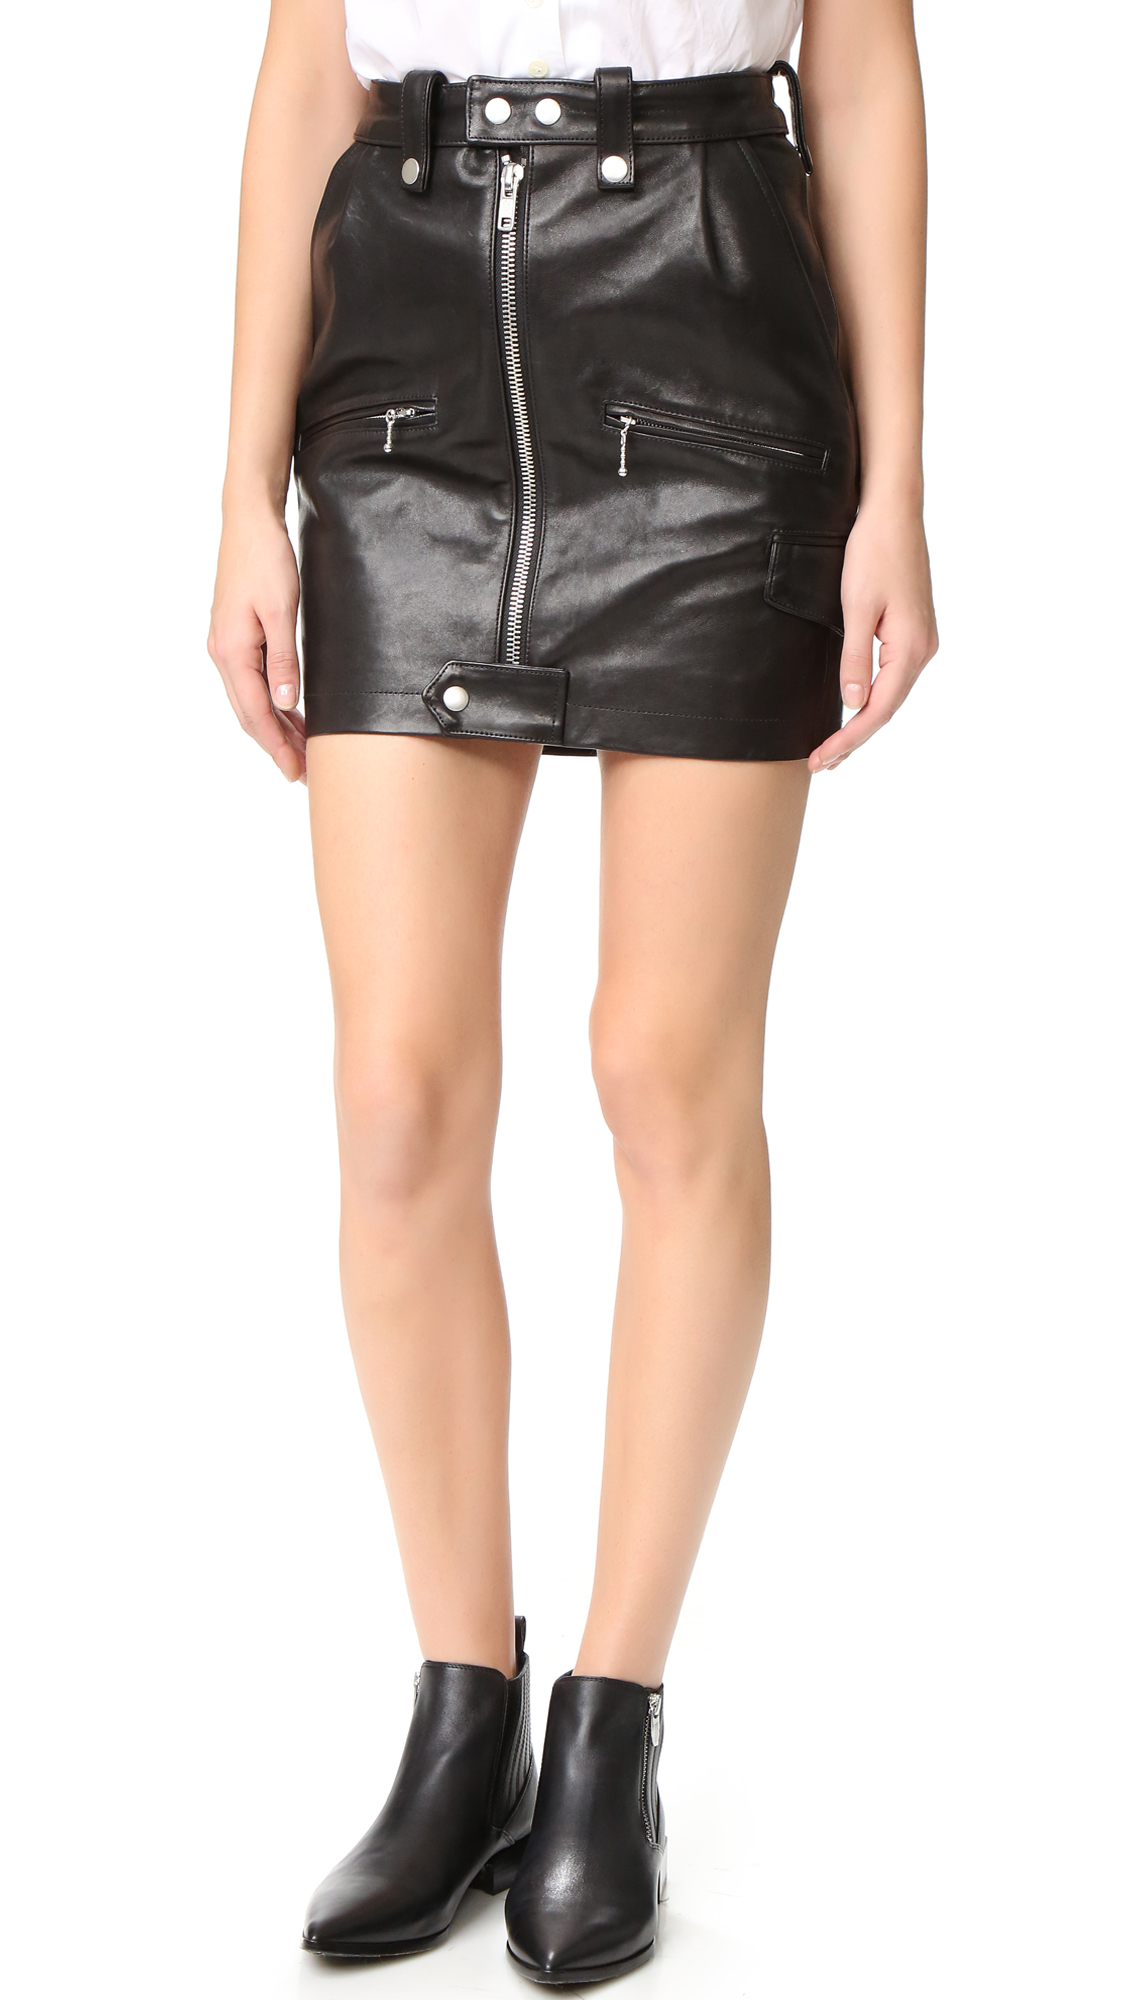 Moto style detailing brings tough edge to this leather FRAME skirt. 5 assorted pockets. Exposed front zip. Lined. Fabric: Glazed leather. Shell: 100% lambskin. Lining 1: 100% cupro. Lining 2: 100% cotton. Leather clean. Imported, China. Measurements Length: 17.75in / 45cm Measurements from